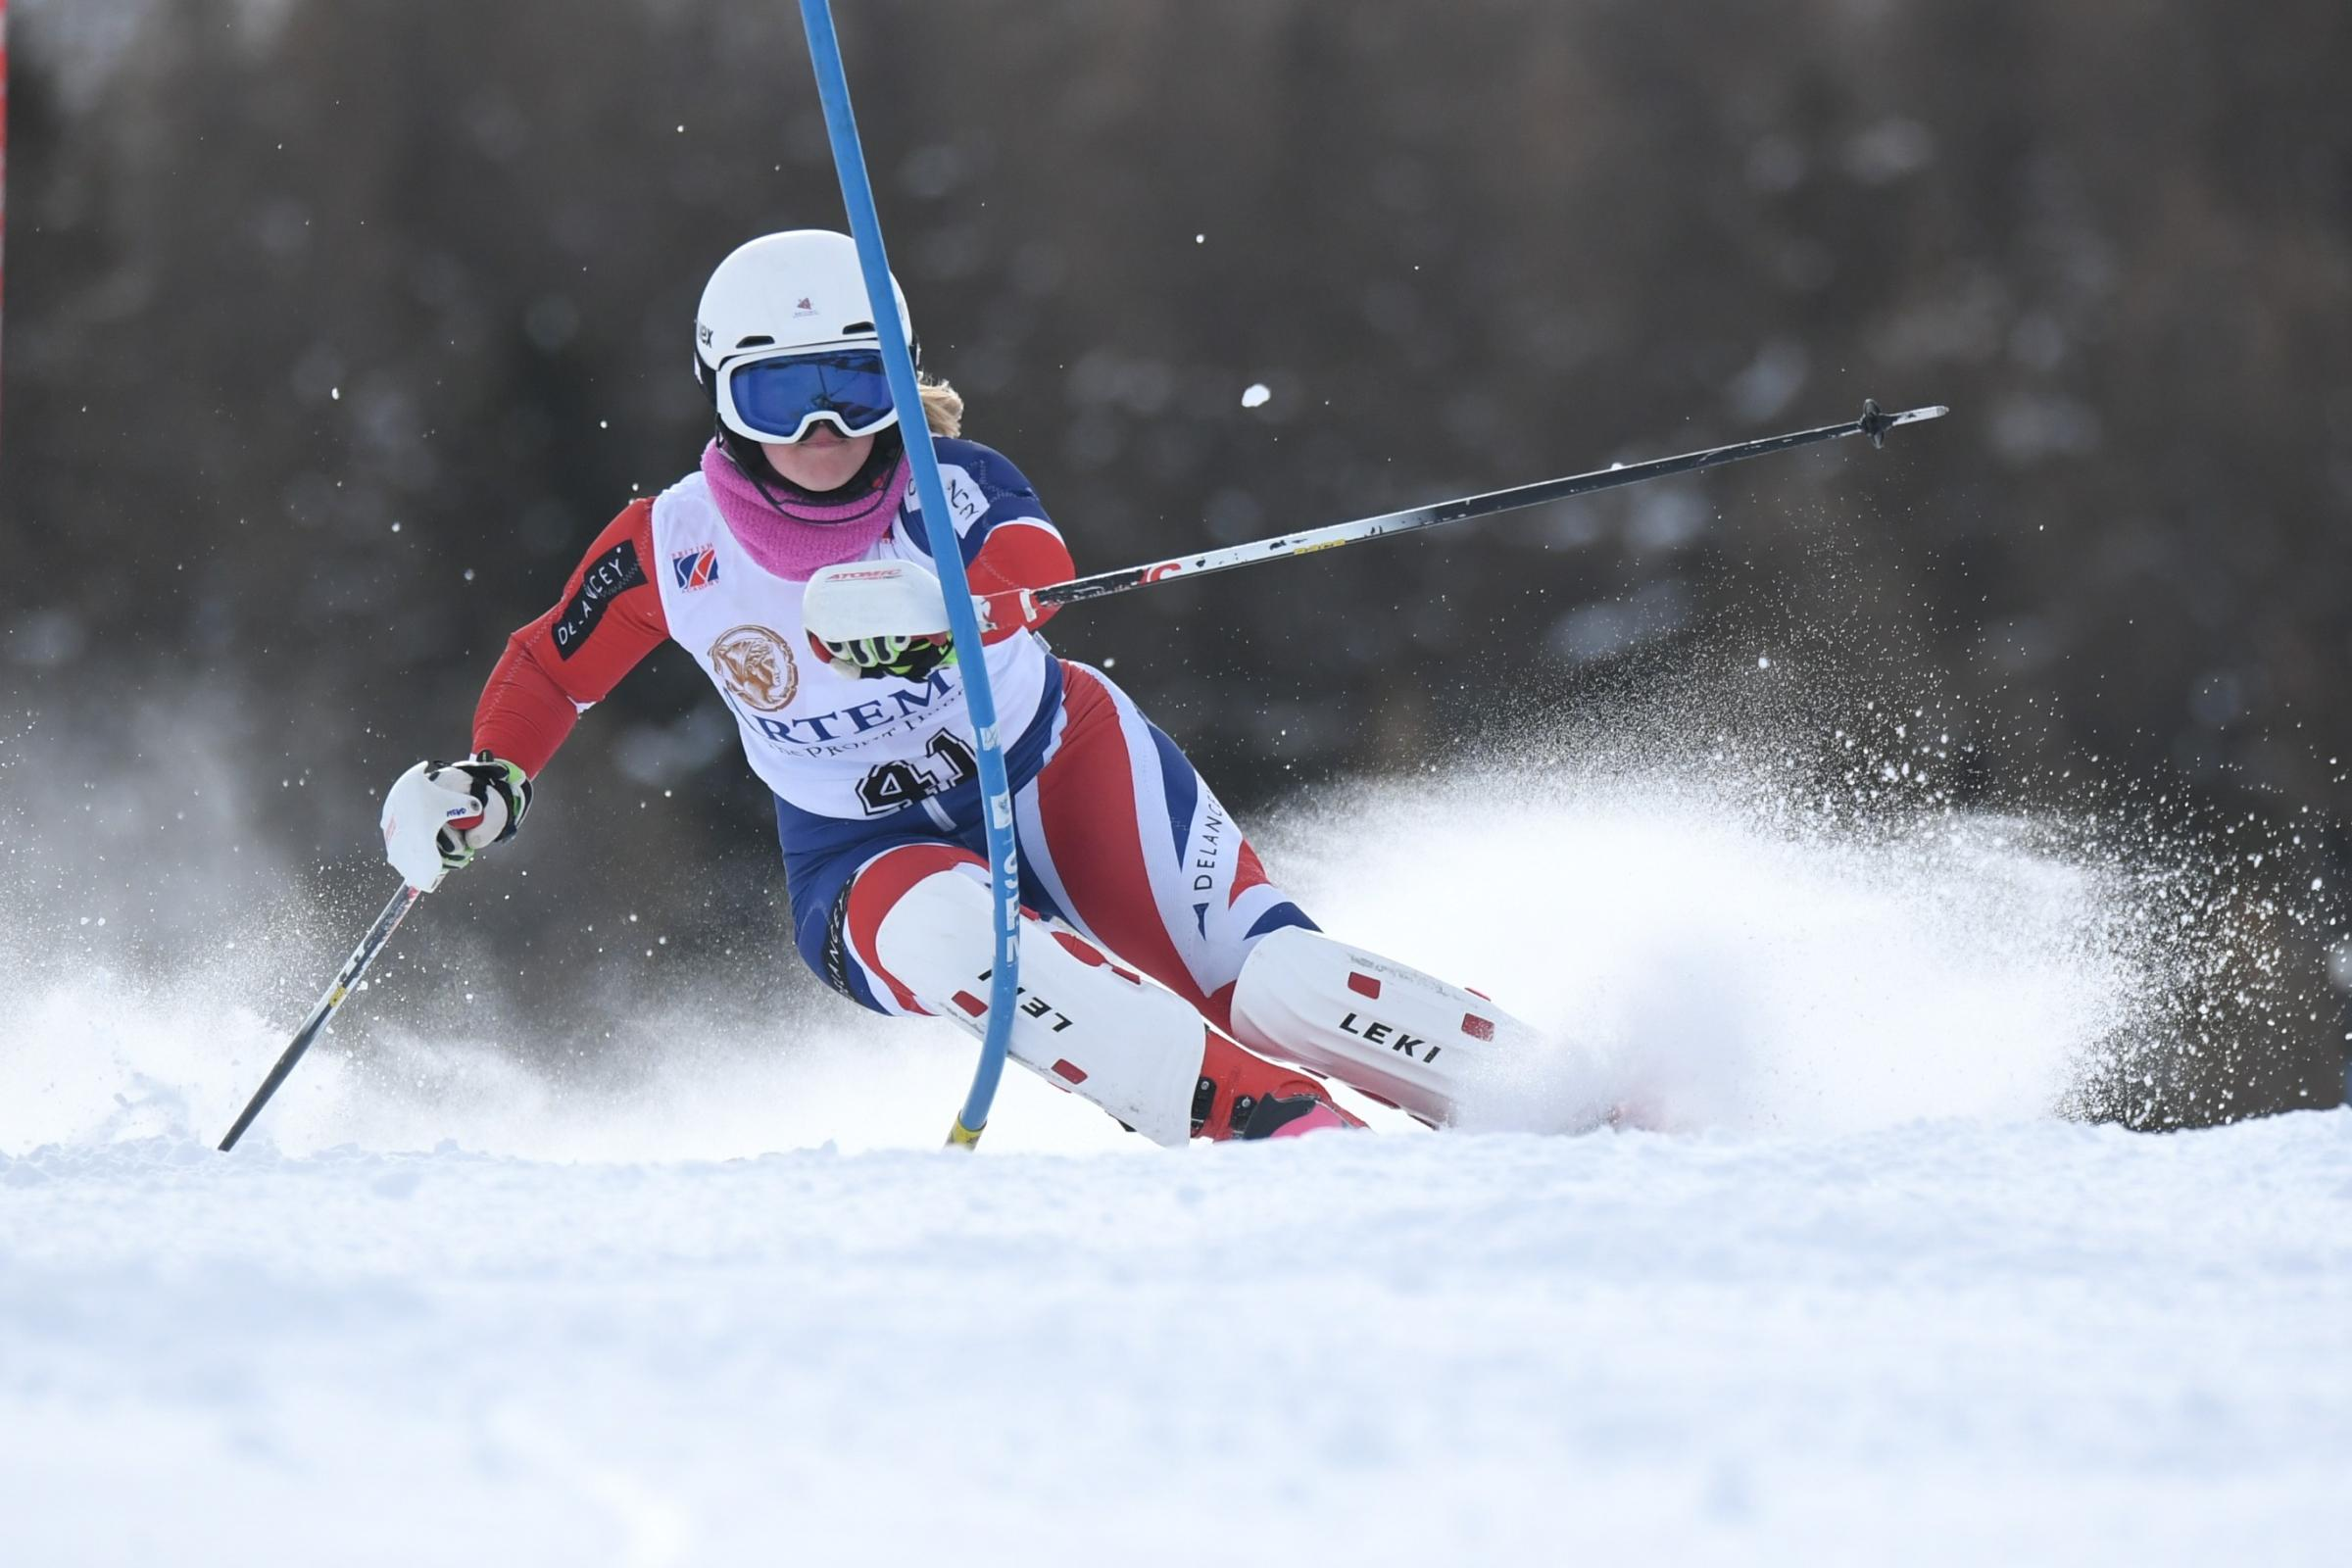 Bruce will follow in the footsteps of Dave Ryding when she returns to the English Alpine Skiing Championships